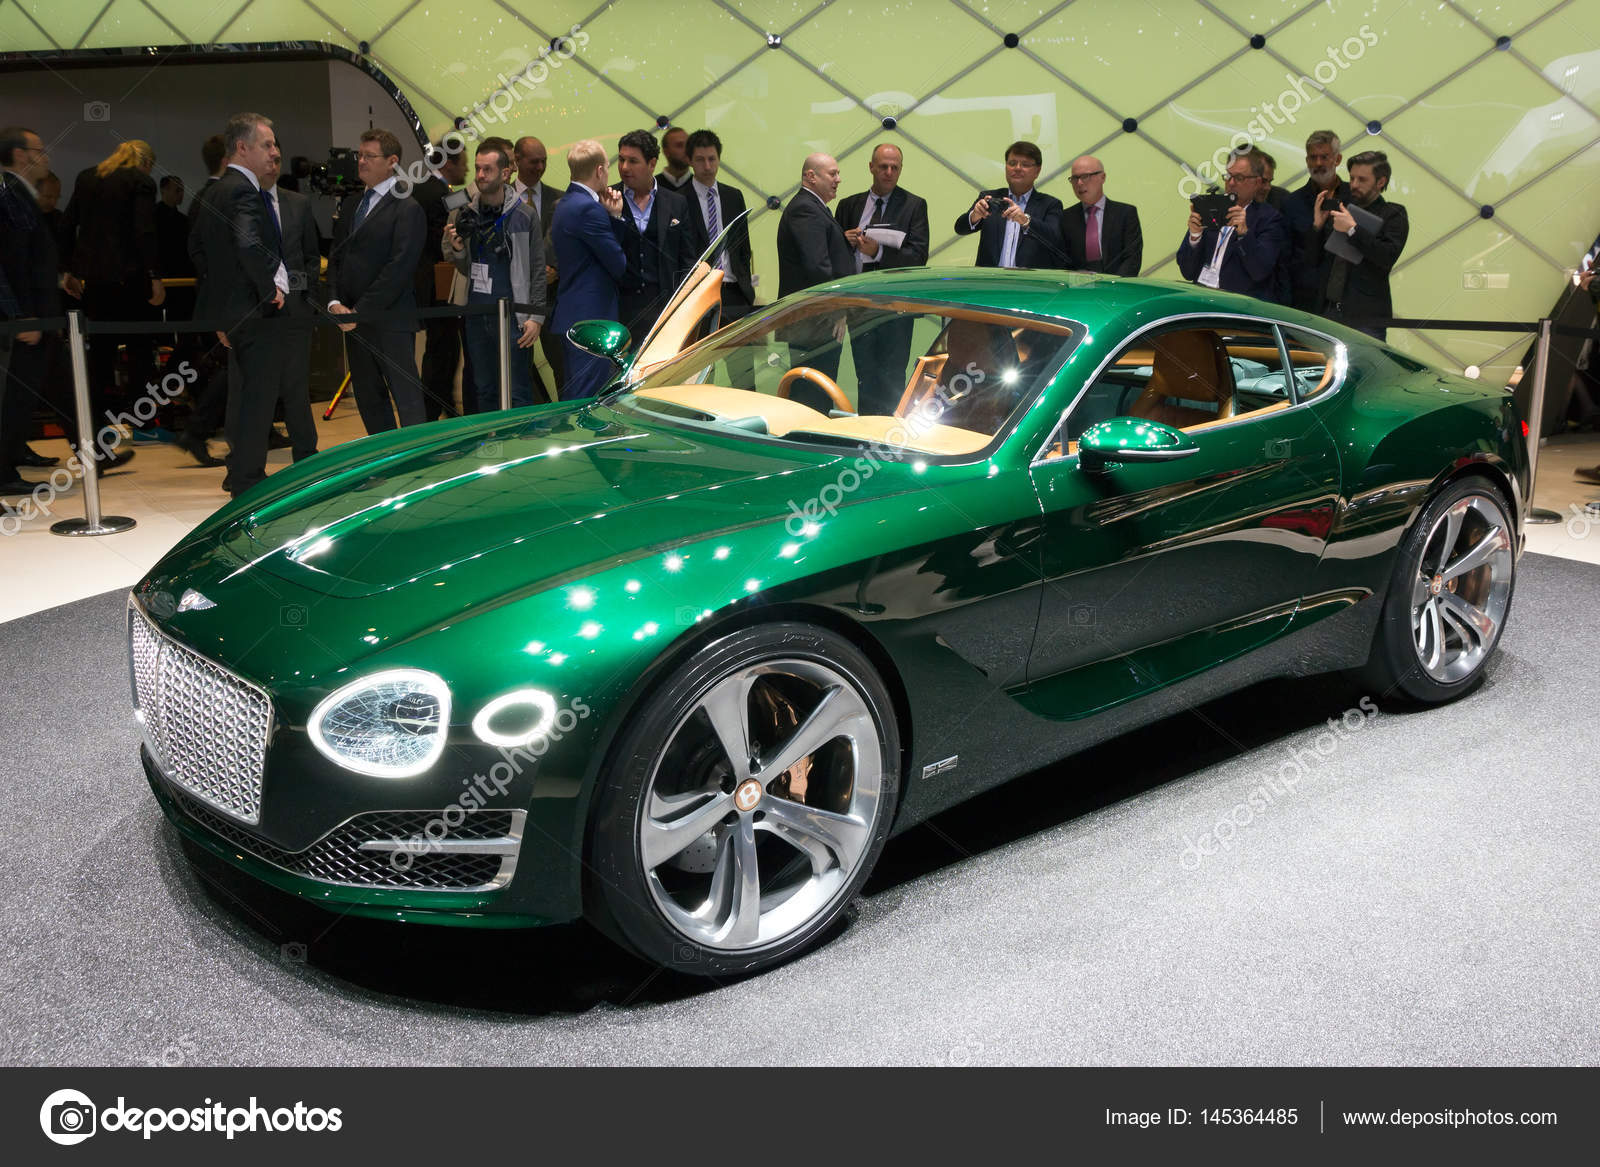 Bentley Exp 10 >> Bentley Exp 10 Speed 6 Concept Stock Editorial Photo